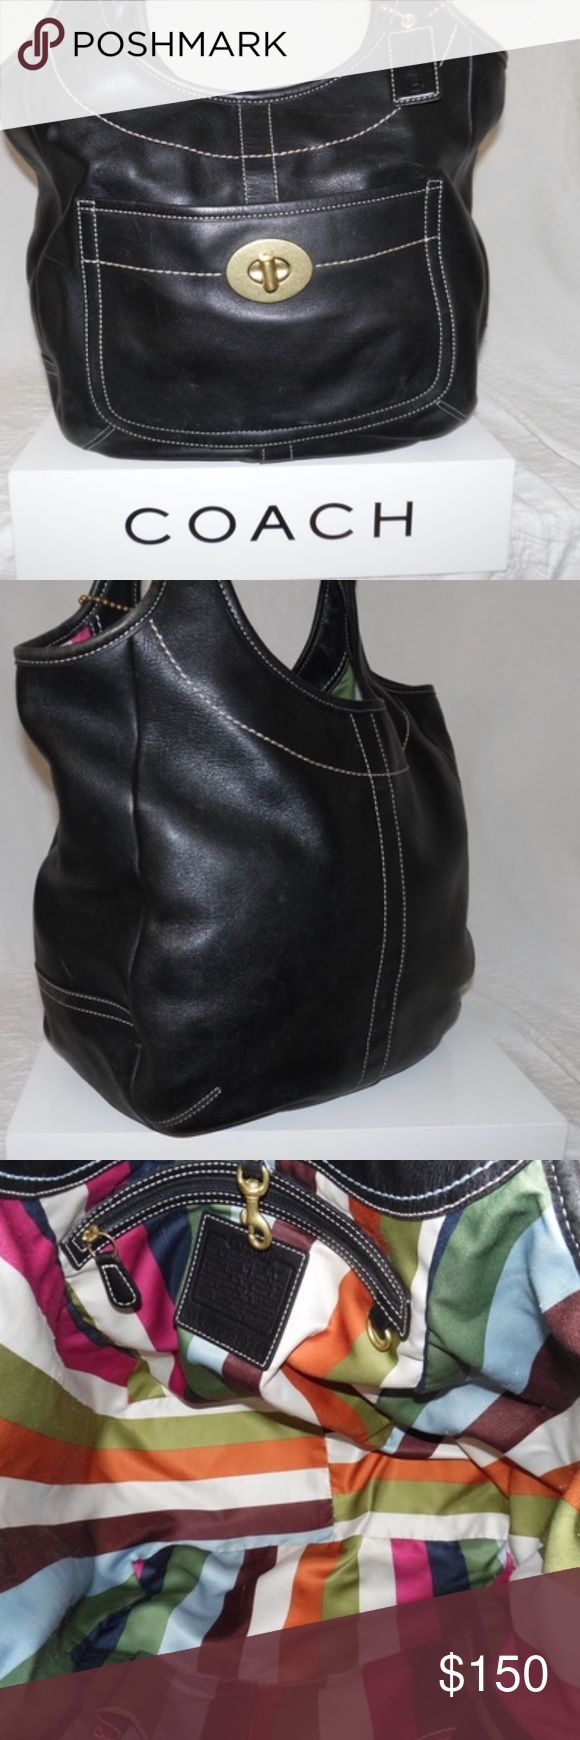 Coach Legacy Ergo Tote Hobo Purse Coach Legacy Ergo Tote Hobo Purse 👛 Black leather, beautiful sateen multi color lining. The Ergo's were made for shoulder comfort. EUC Coach Bags